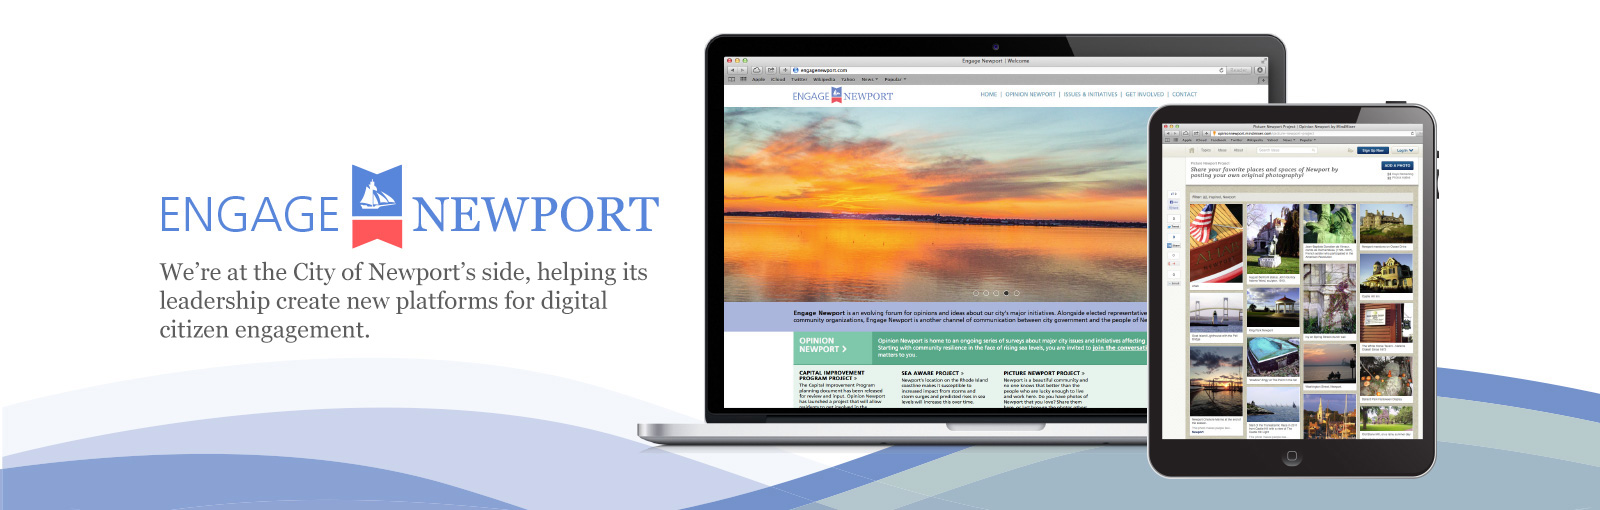 The City of Newport launched an initiative called Engage Newport to enhance the communications with residents, businesses and city government. A centerpiece of the initiative is a new micro site where its citizens are able to find information on current or upcoming projects, and community organizations, and voice their questions, concerns or opinions regarding various city projects.